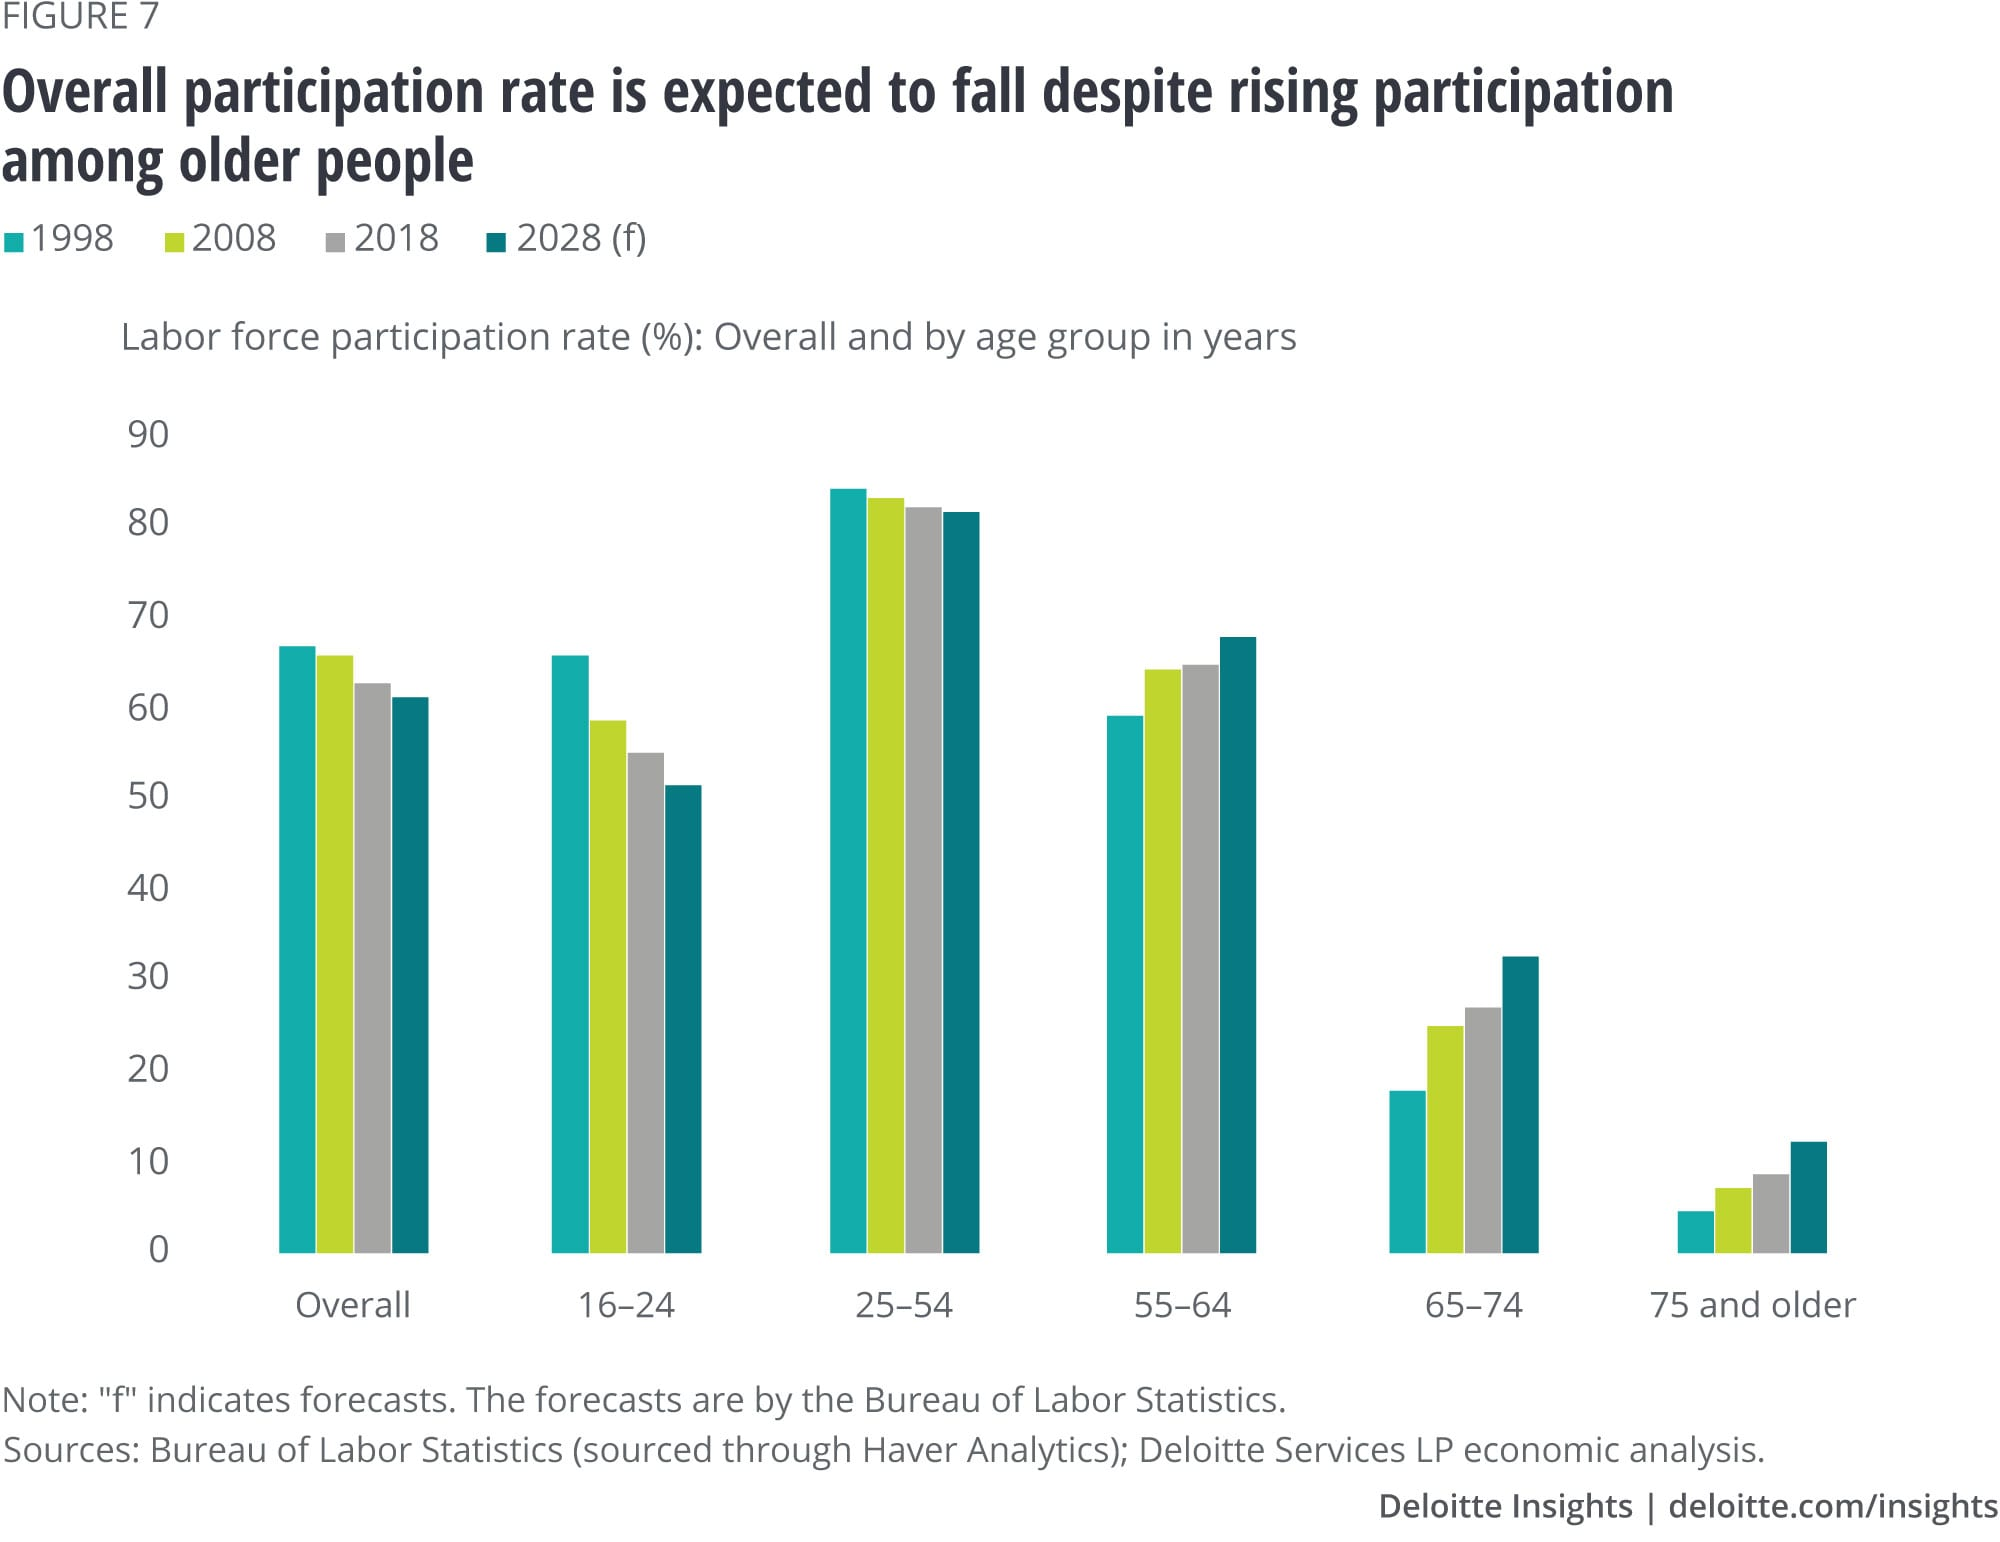 Overall participation rate is expected to fall despite rising participation among older people